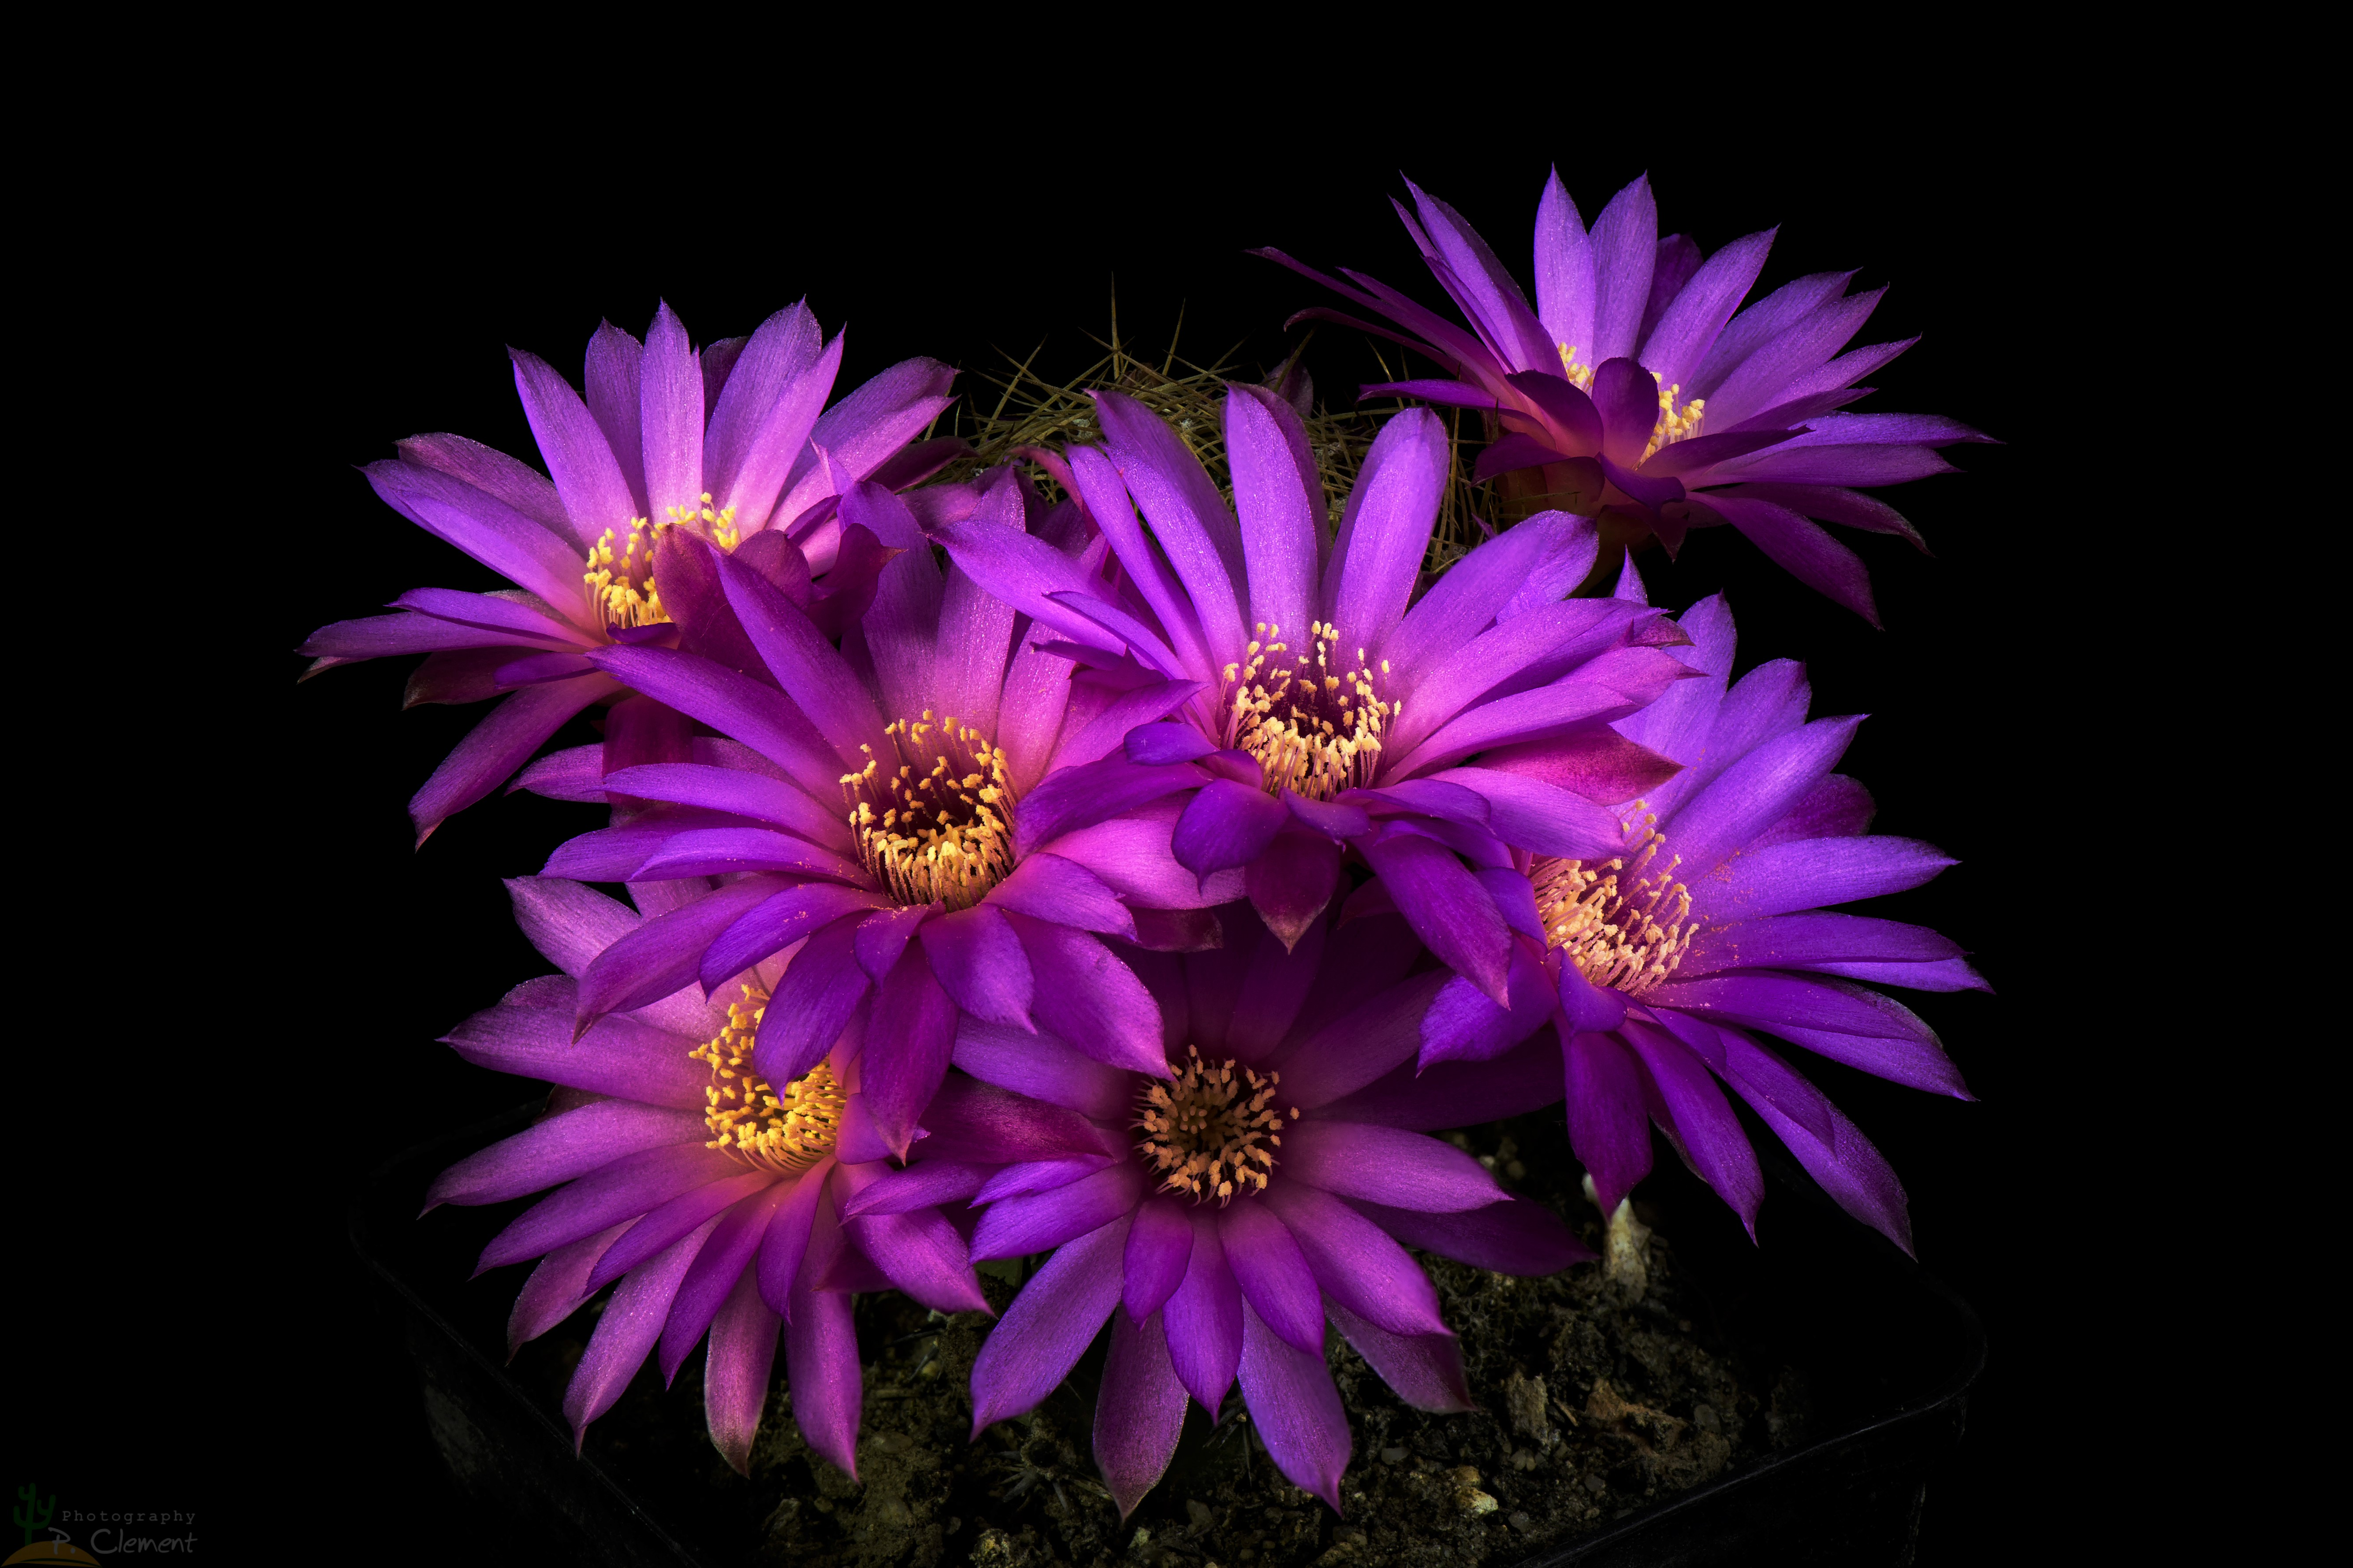 Cactus Flowers 5k Retina Ultra Hd Wallpaper Background Image 5338x3558 Id 879475 Wallpaper Abyss